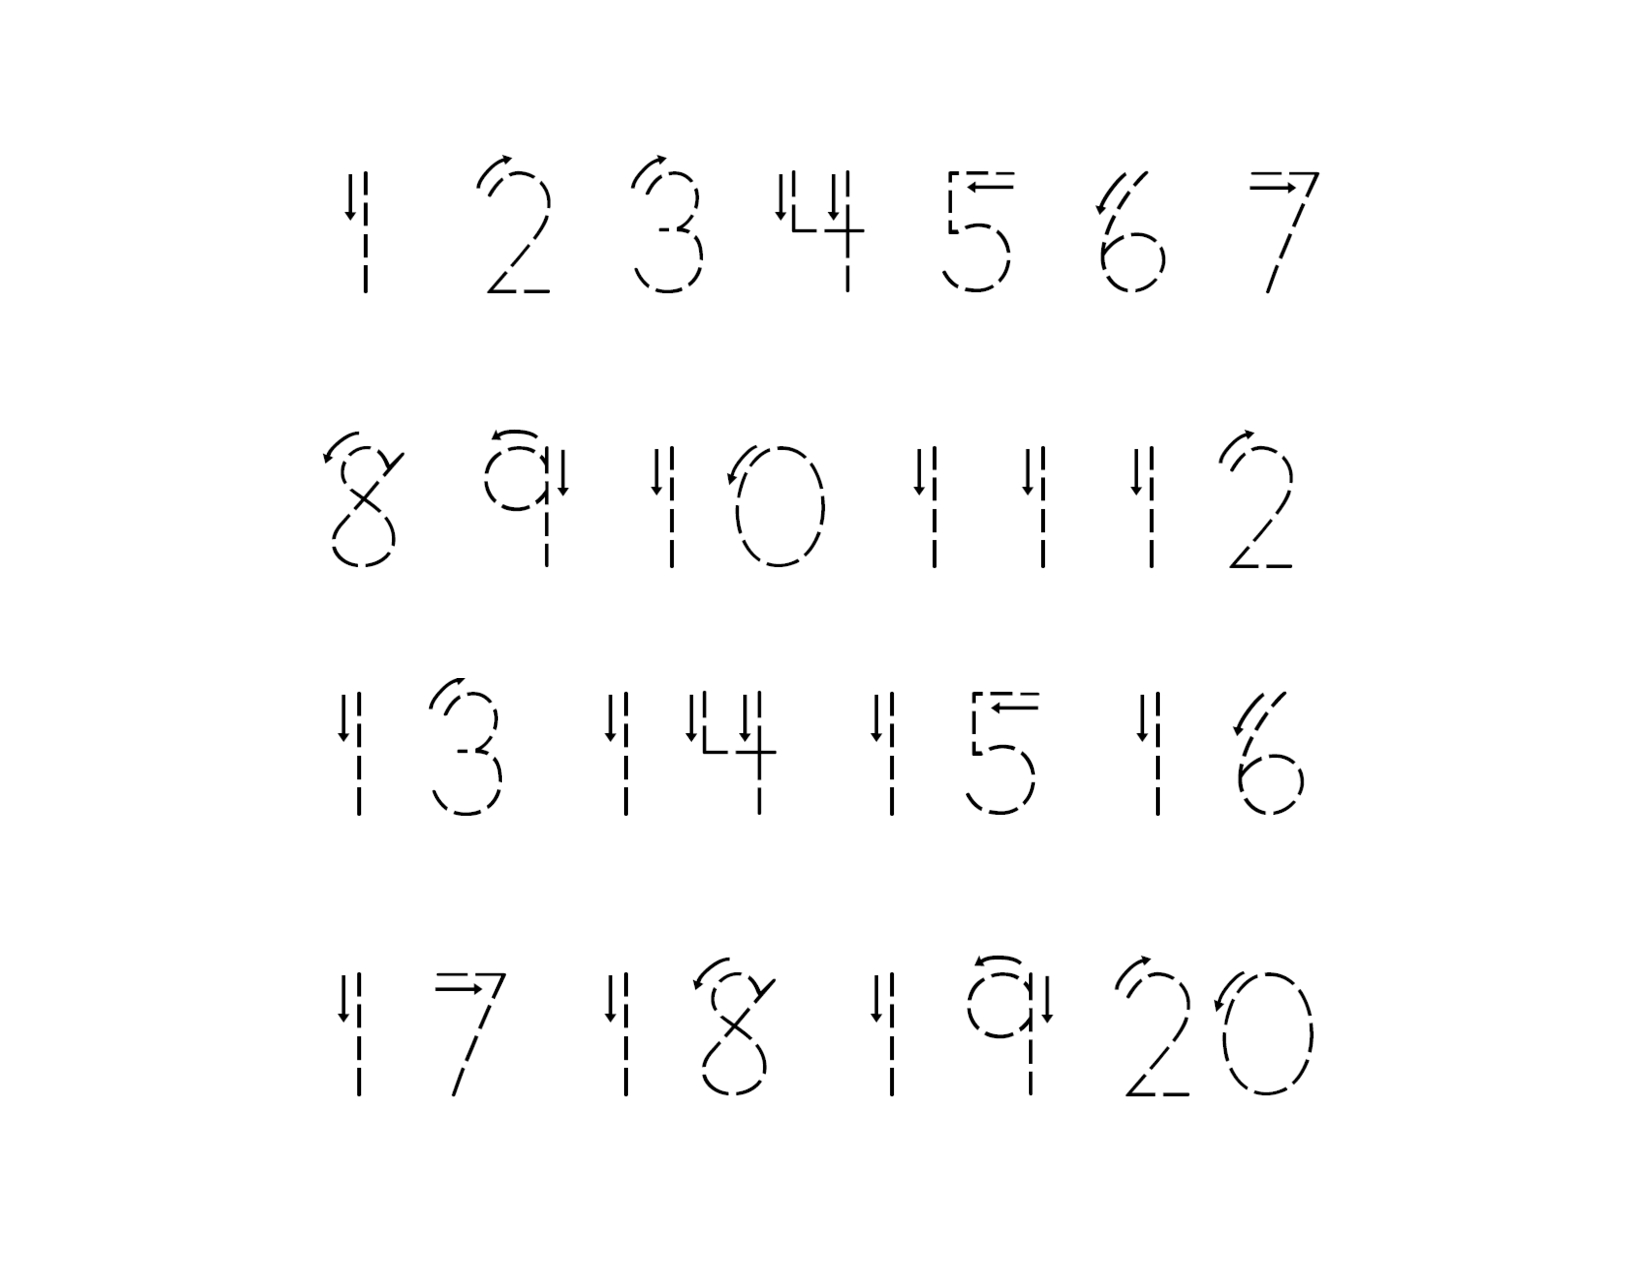 Printable Bubble Numbers (84+ Images In Collection) Page 1 - Free Printable Bubble Numbers